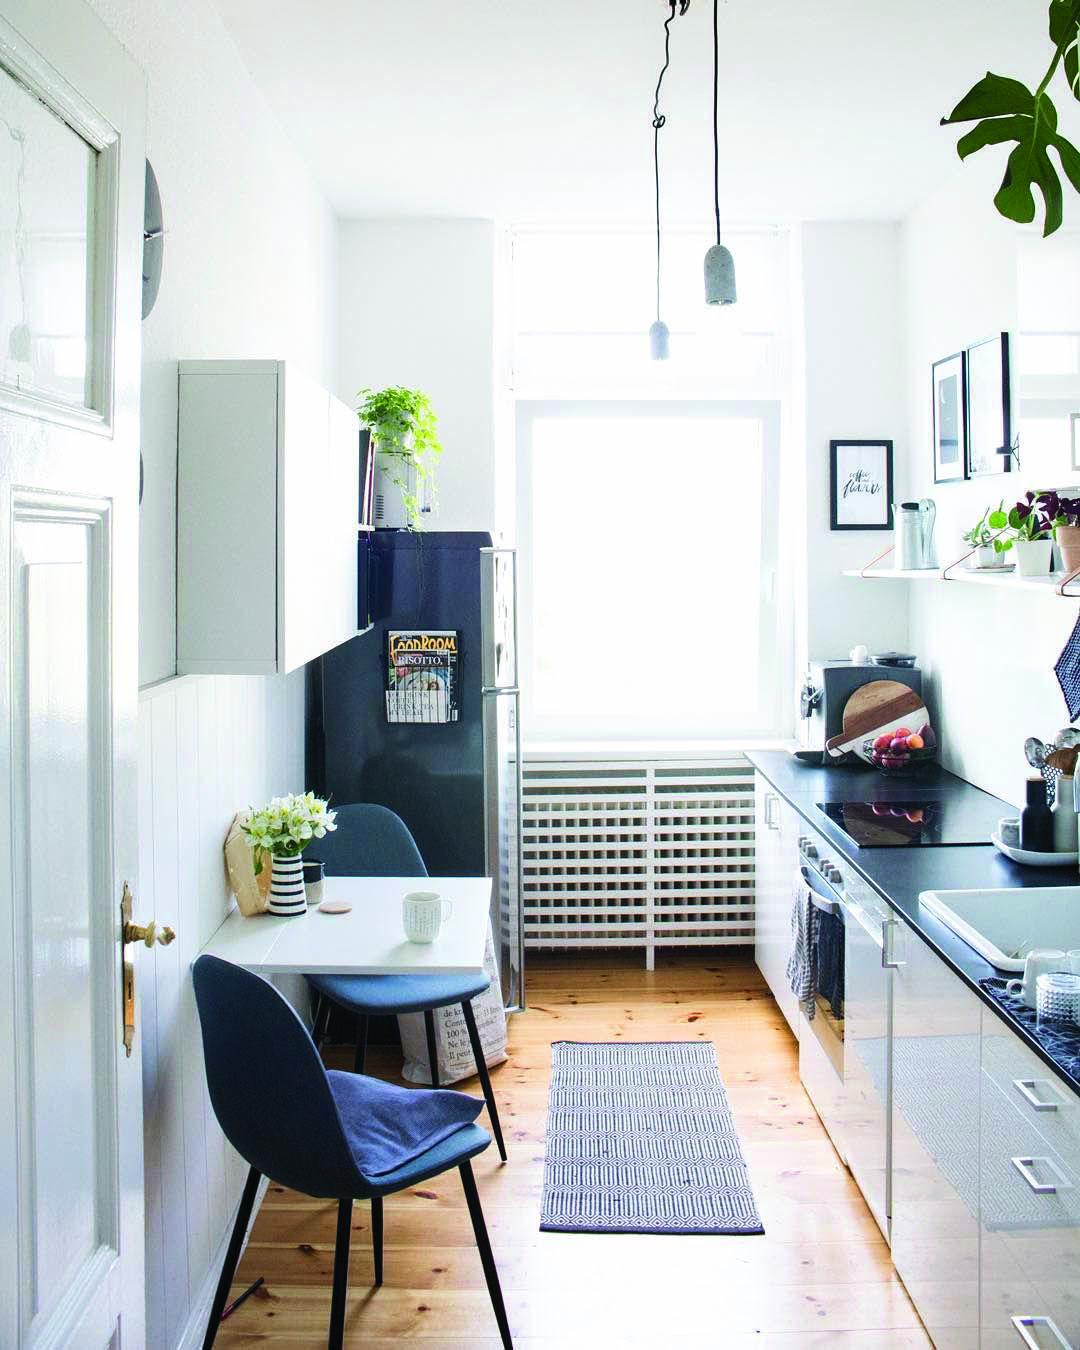 Superb minimalist kitchen design for small space for your